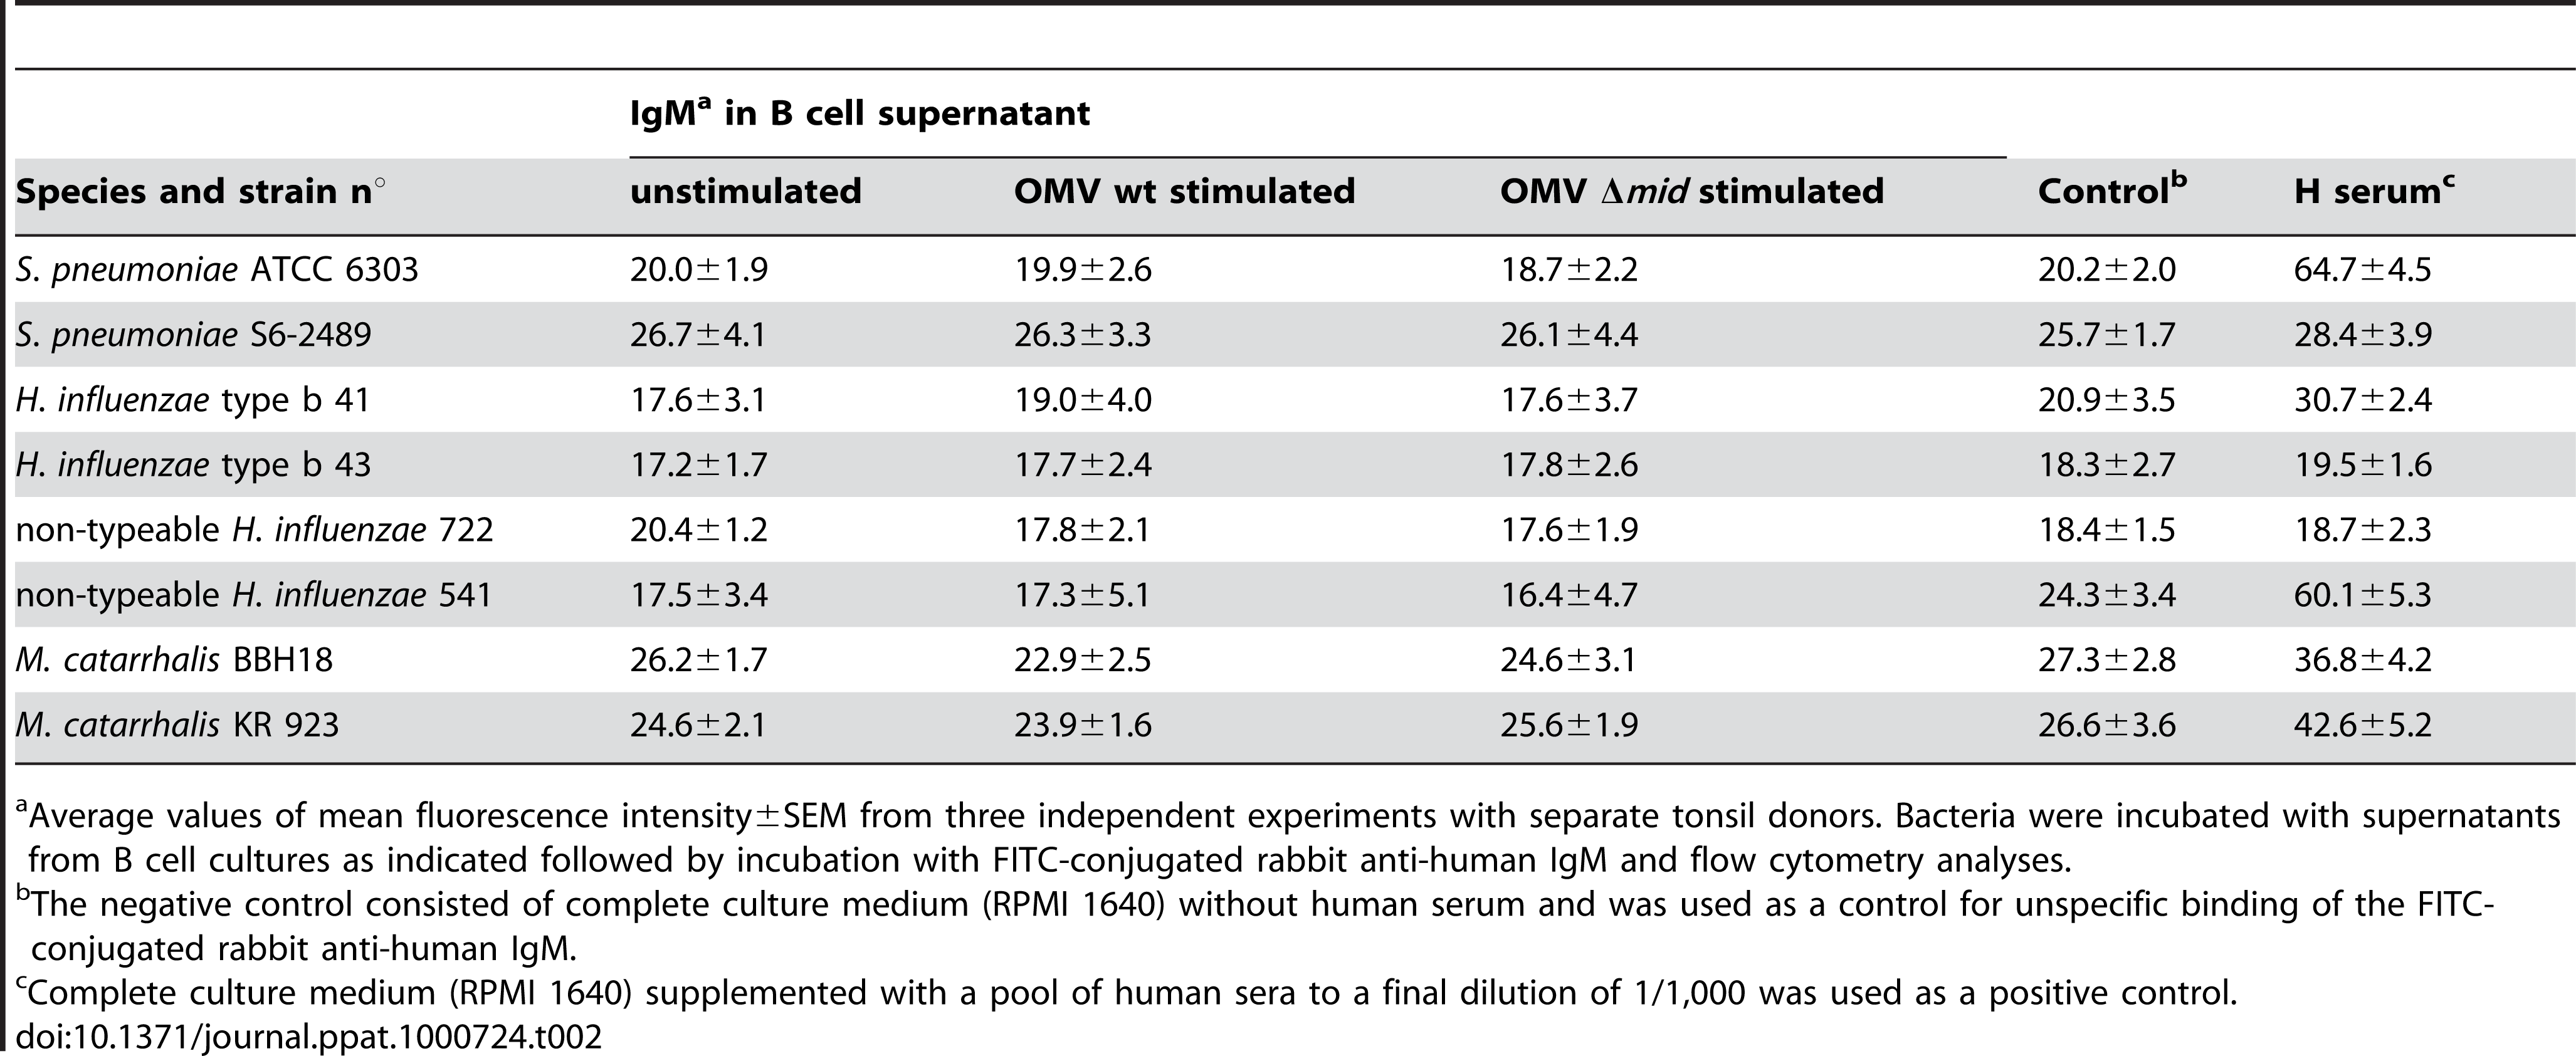 Analysis of the specificity of IgM in supernatants from human B cells stimulated with OMV.